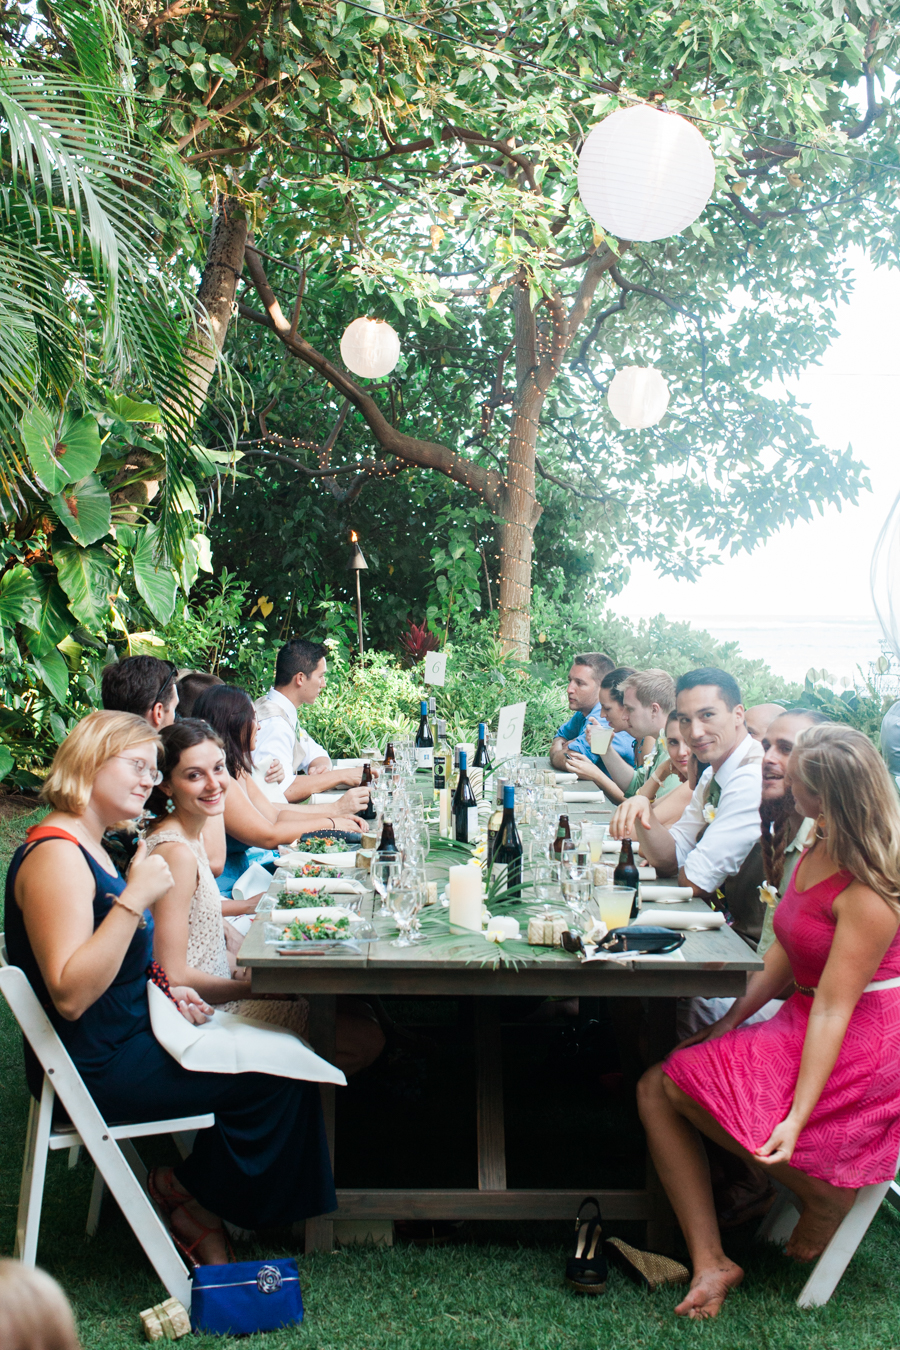 kateweinsteinphoto_juliatodd_wedding_hawaii72.jpg